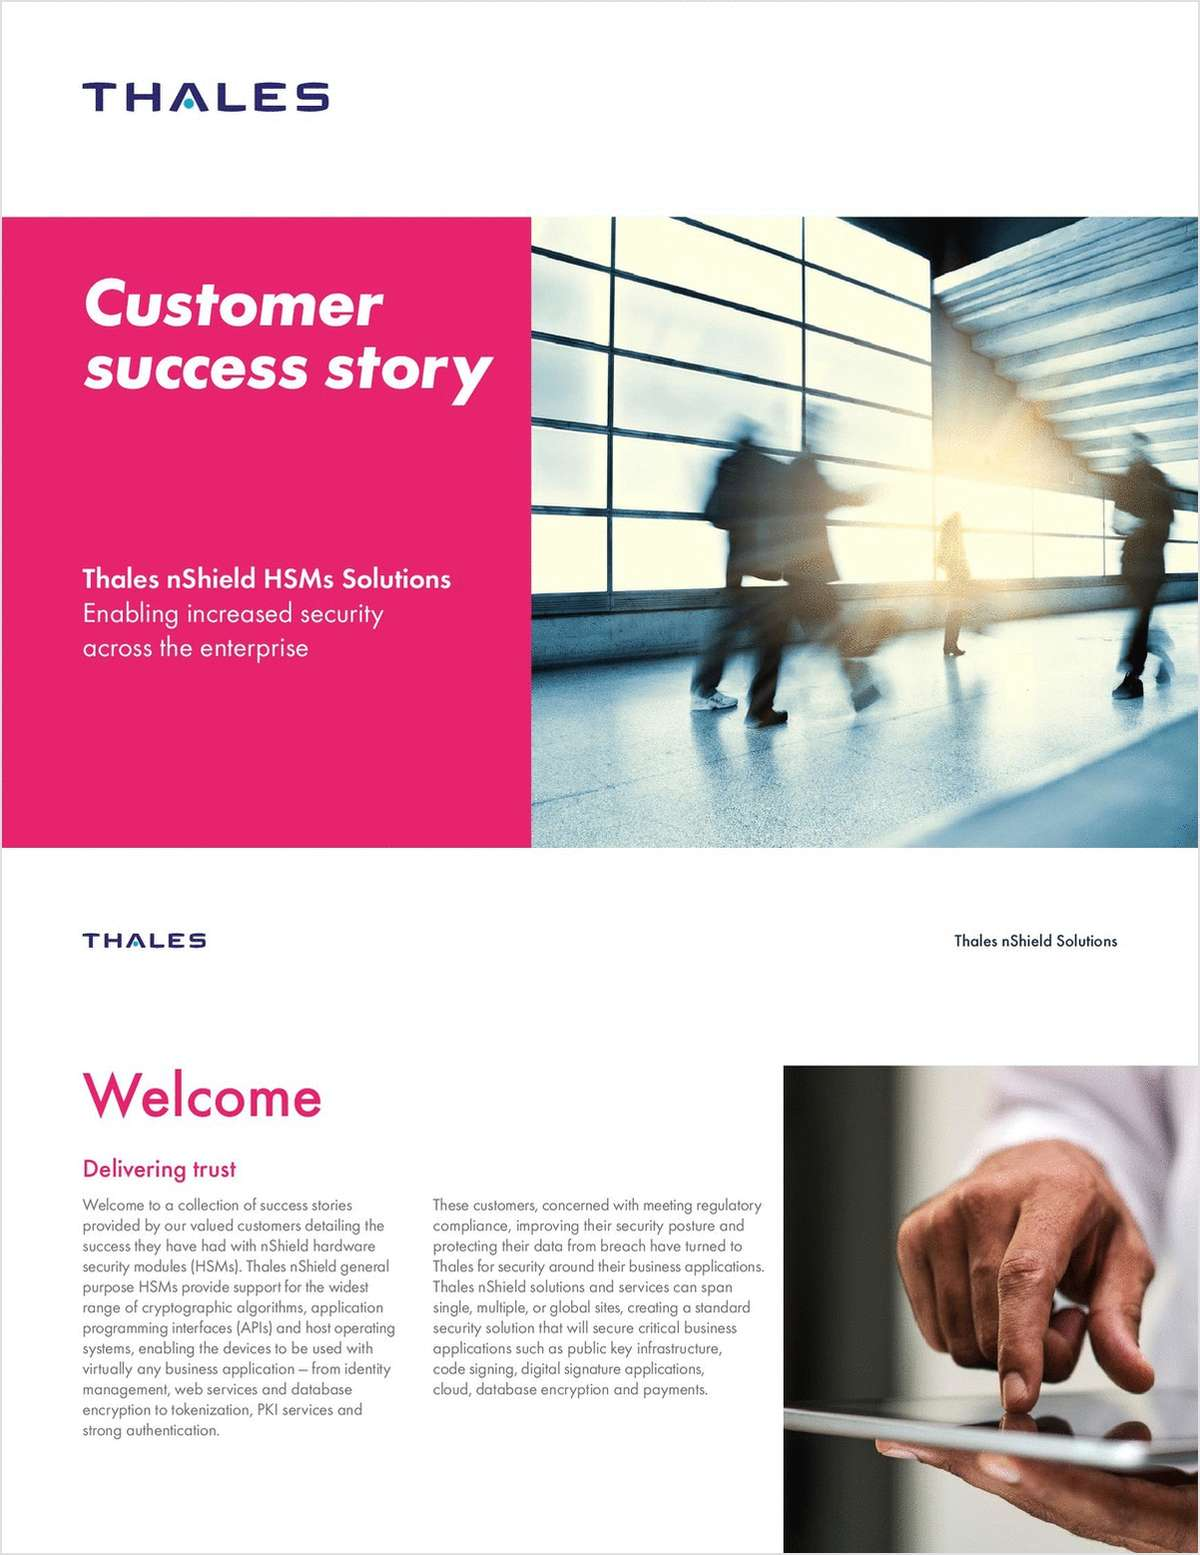 Security Across the Enterprise - Customer Success Stories